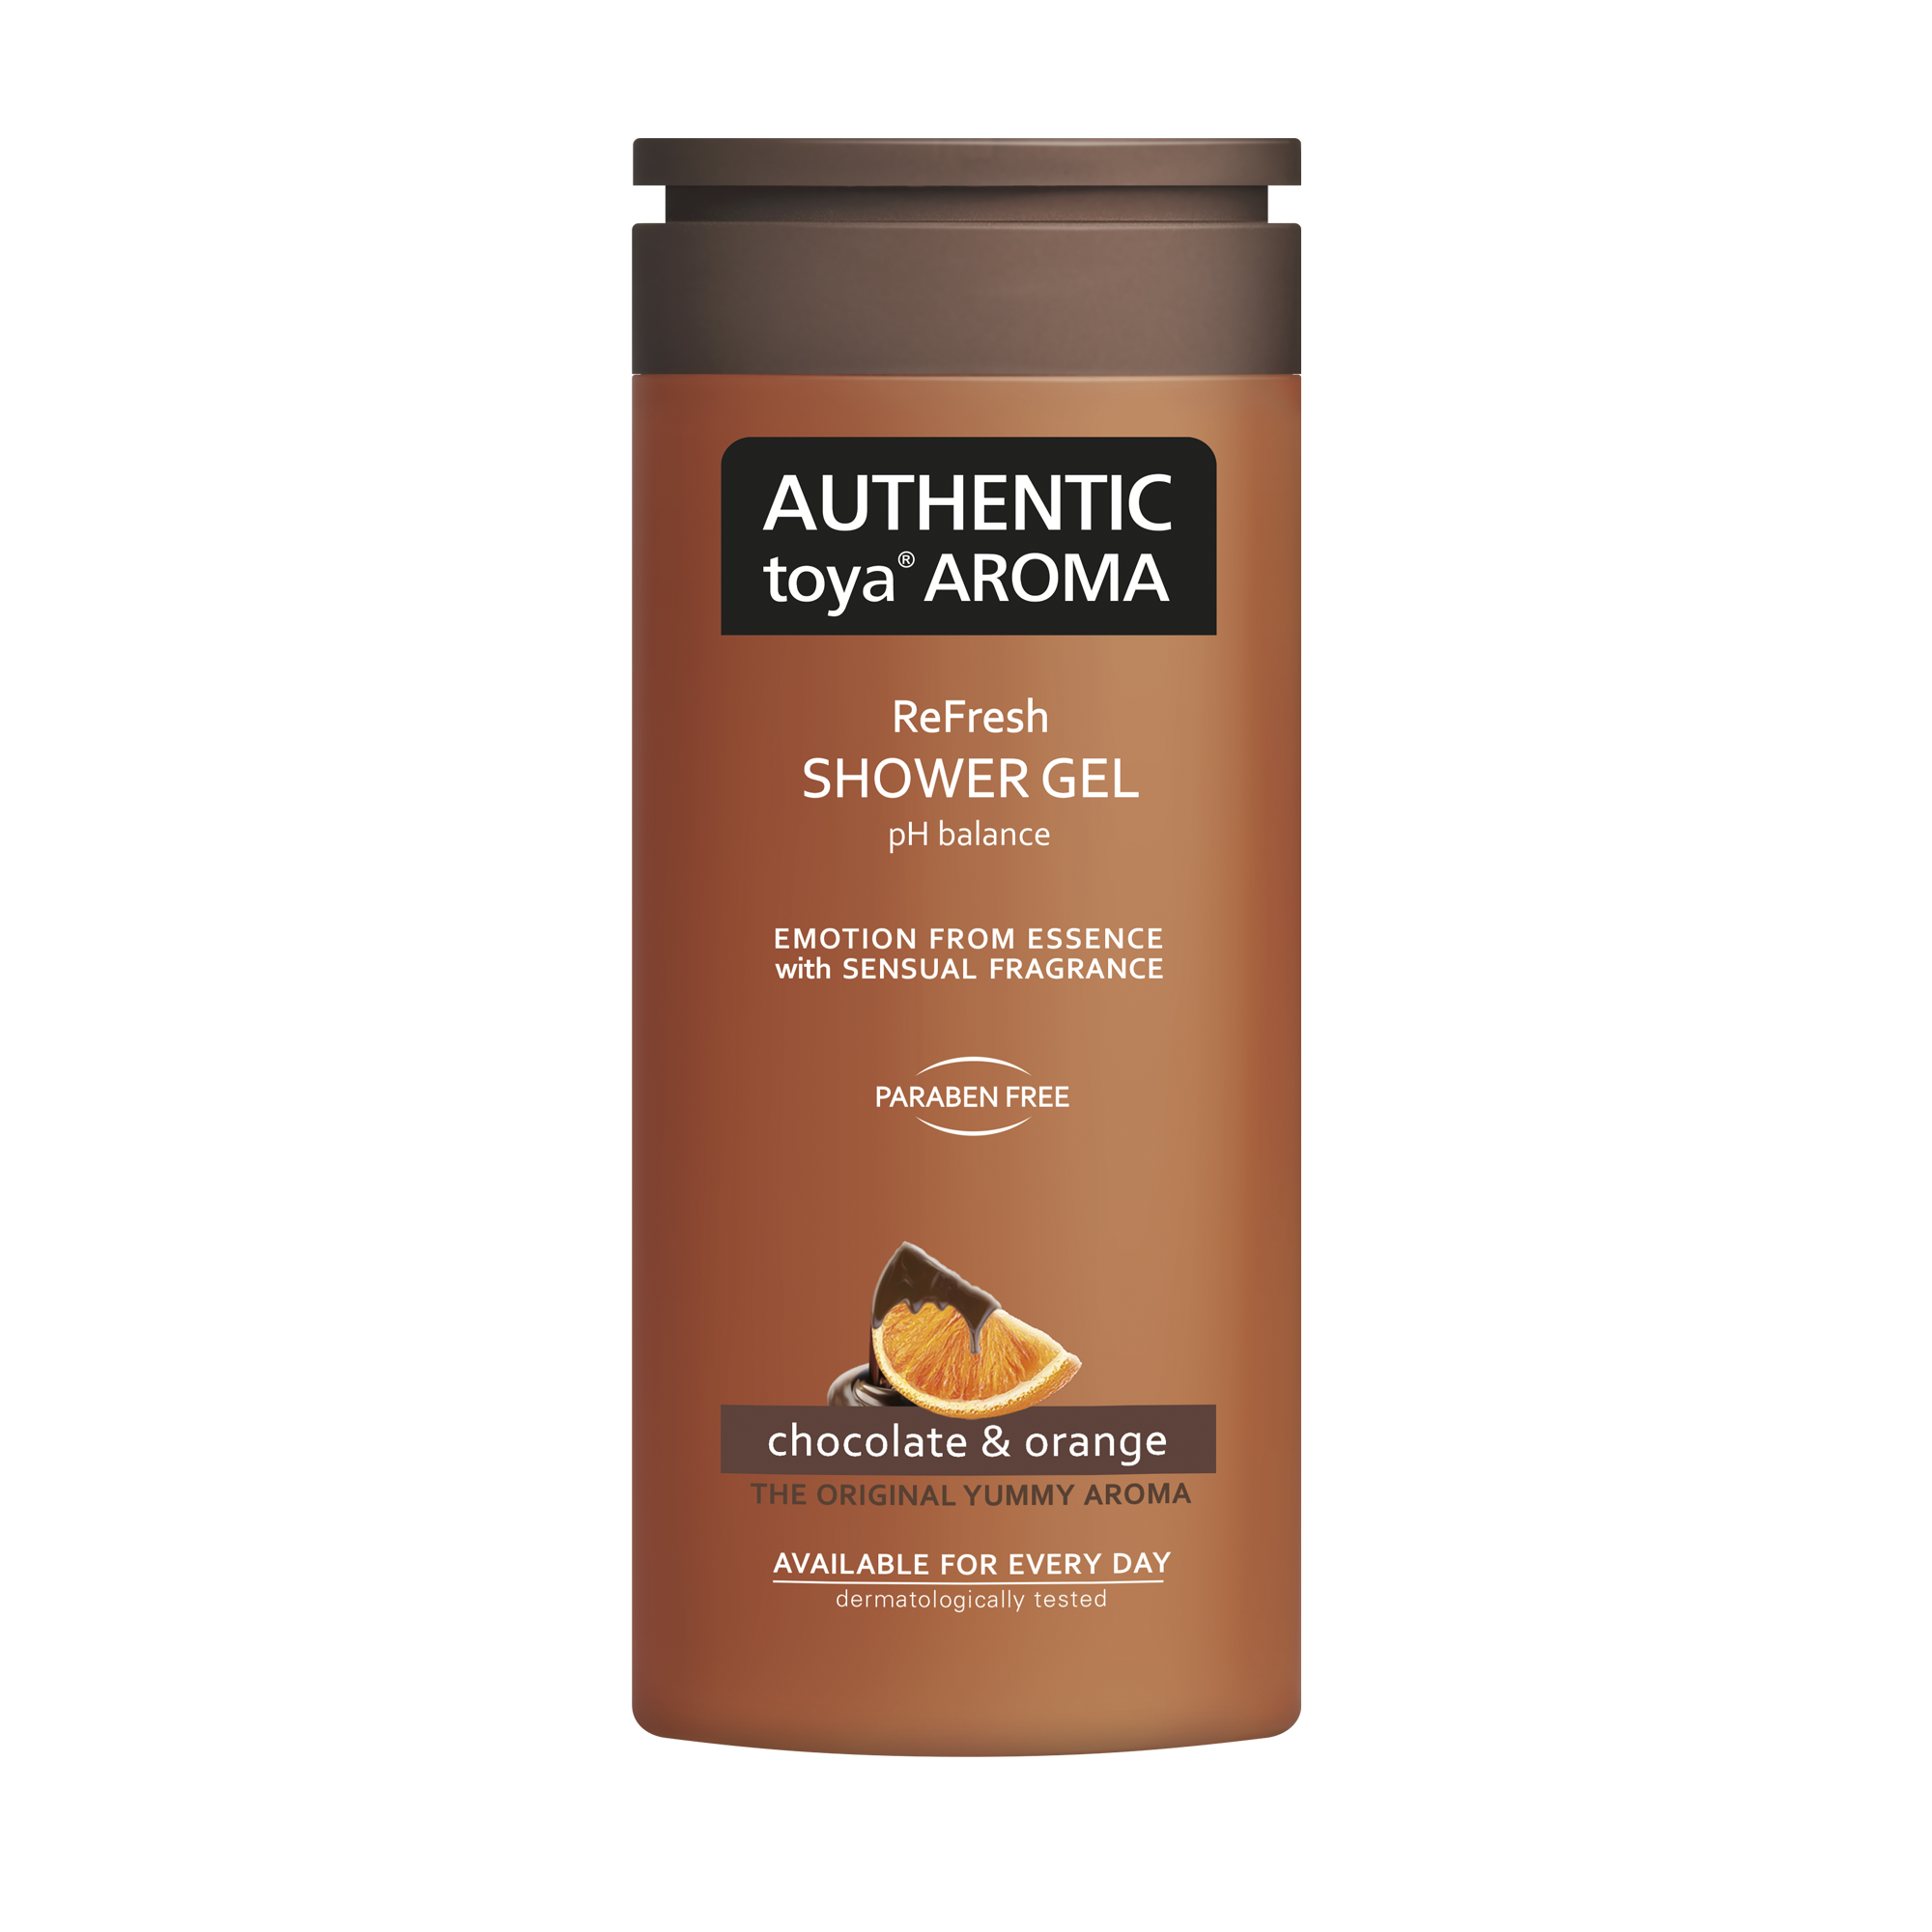 AUTHENTIC toya AROMA chocolate & orange shower gel